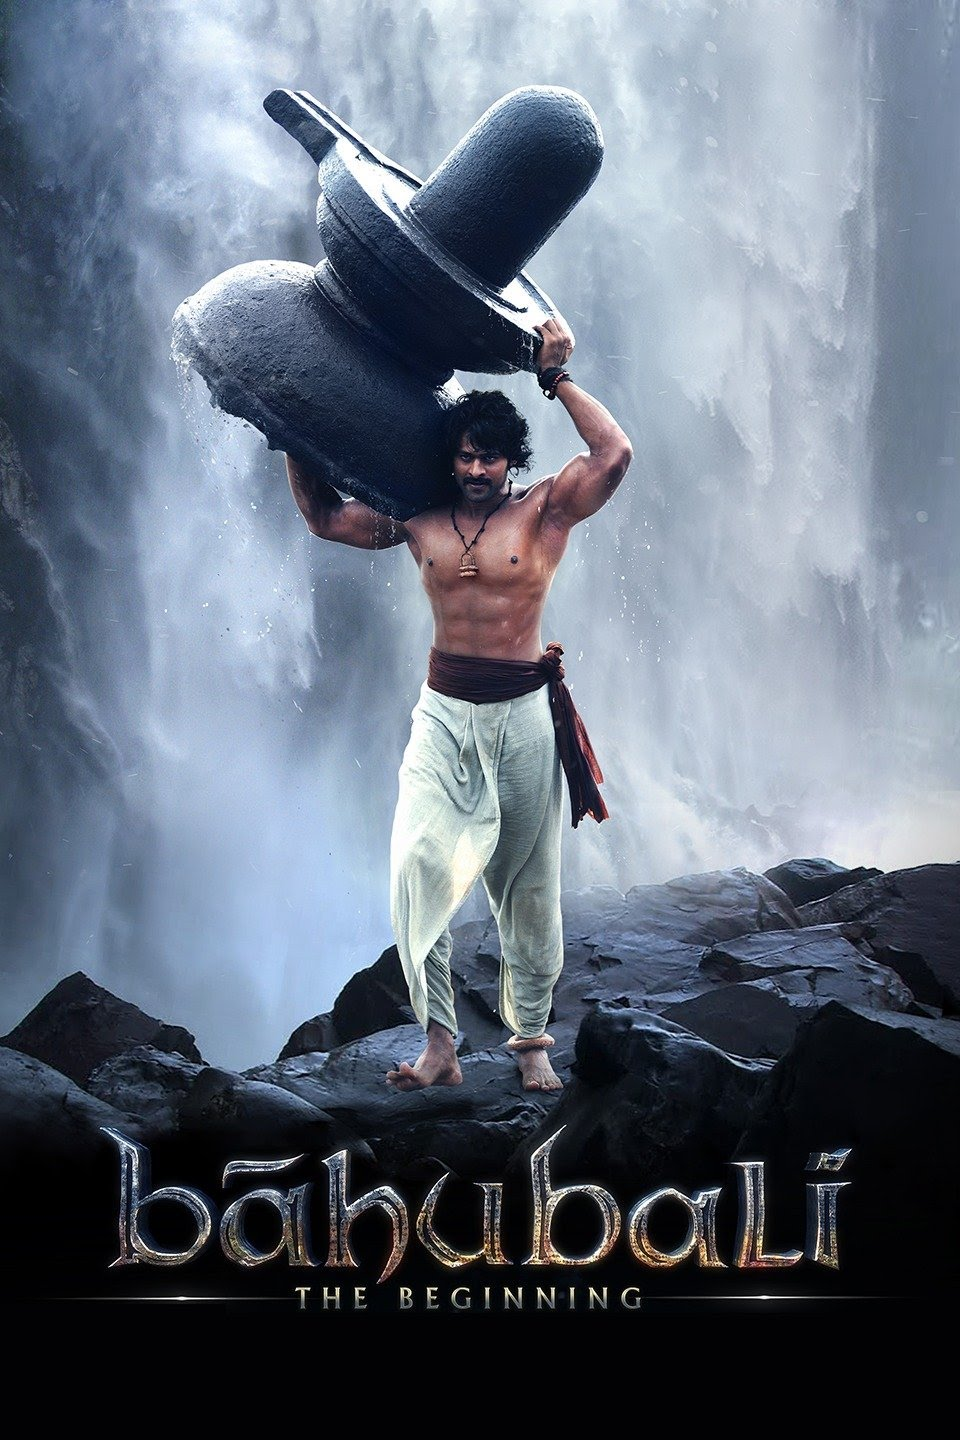 Download Baahubali (2015) Hindi Dubbed Full Movie 480p [400MB] | 720p [1.4GB]